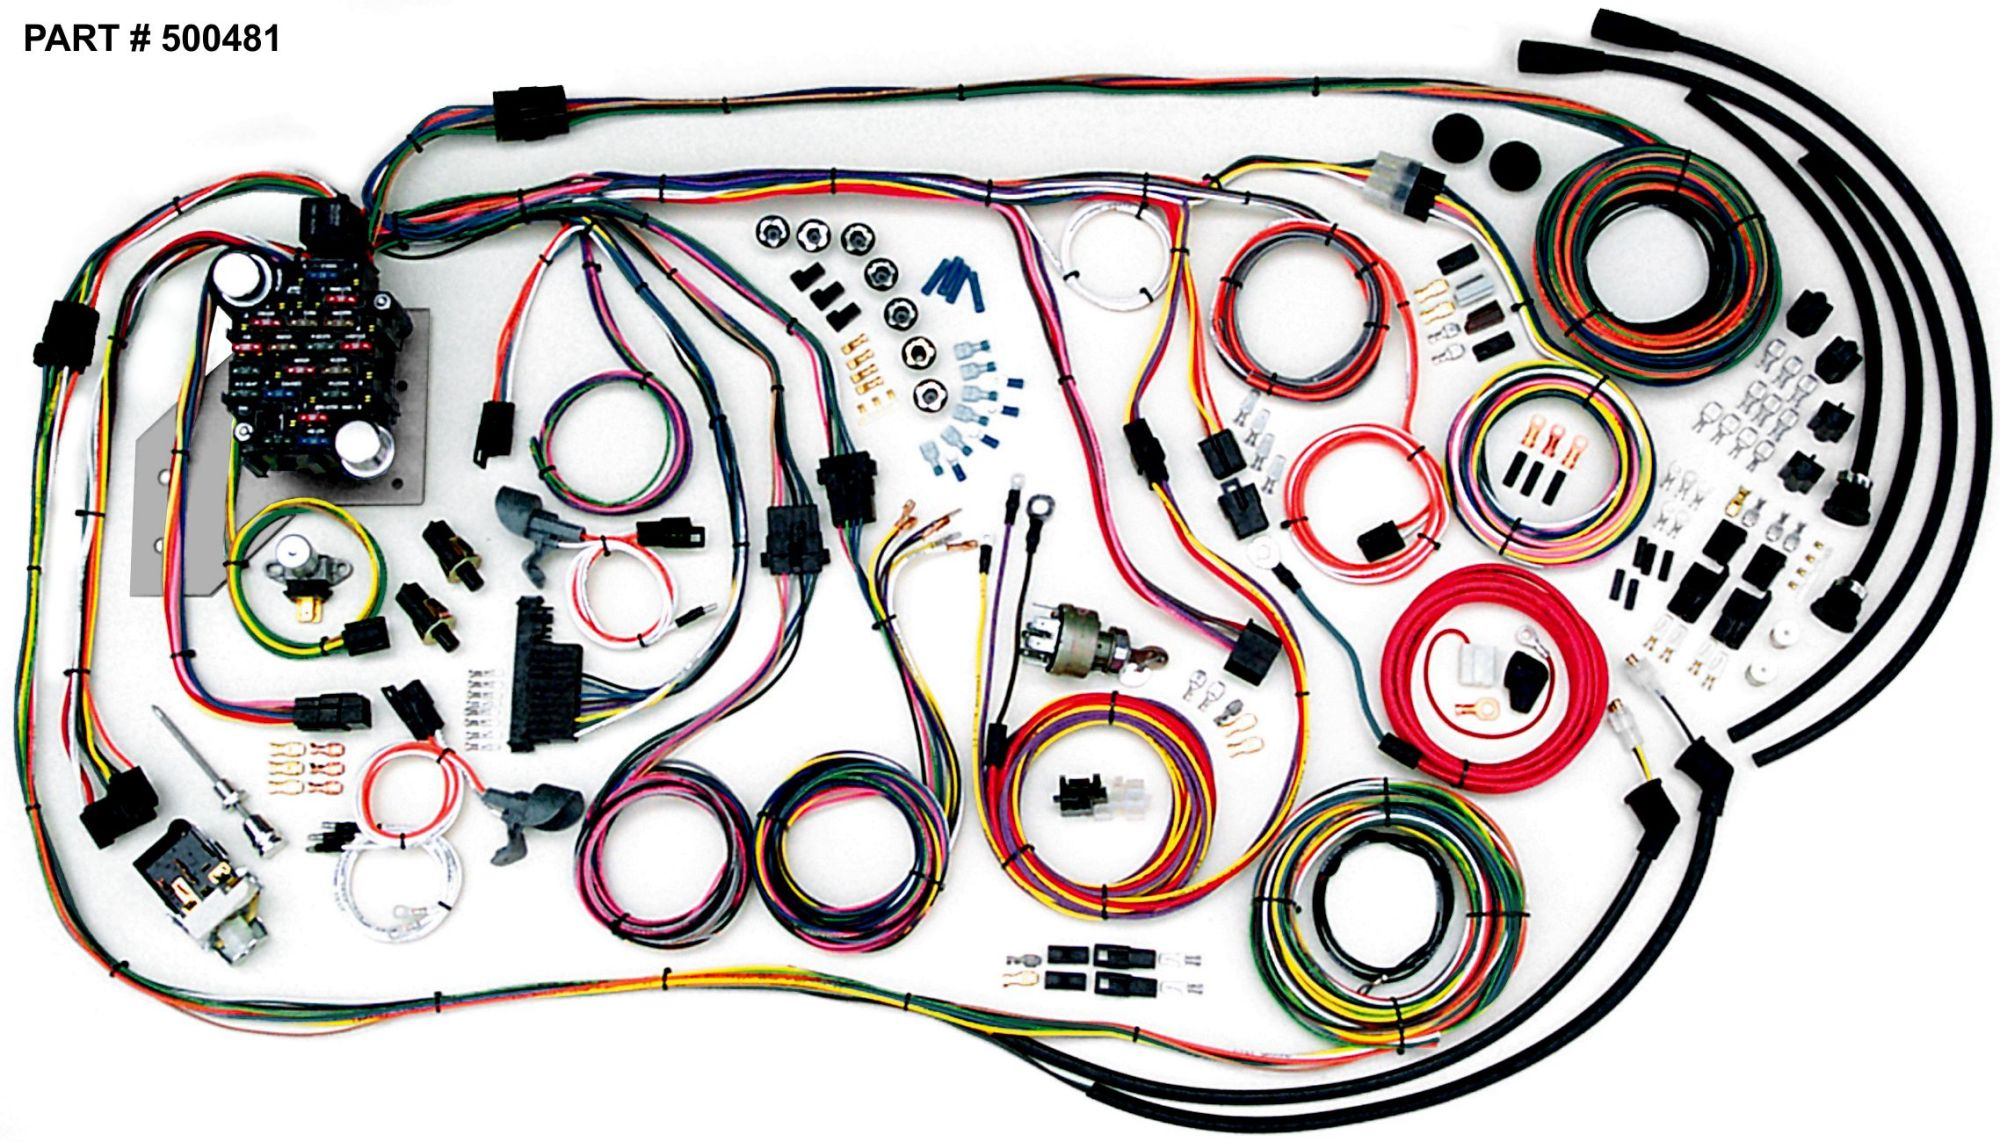 hight resolution of 1956 1957 1958 1959 chevy truck fuse panel wire harness new wiring1955 2nd series